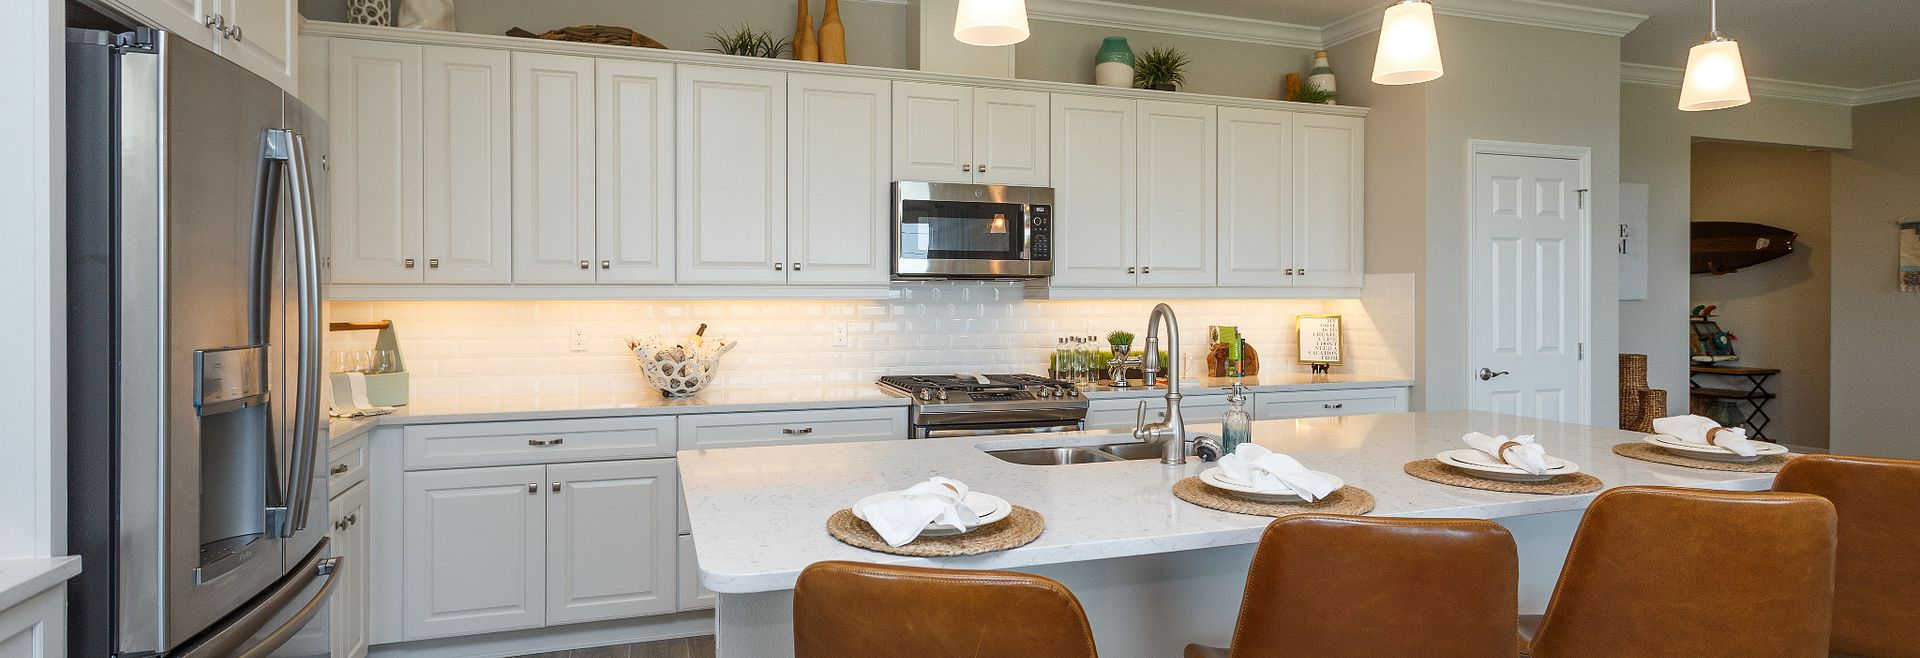 Trilogy Orlando Liberty Model Home Kitchen